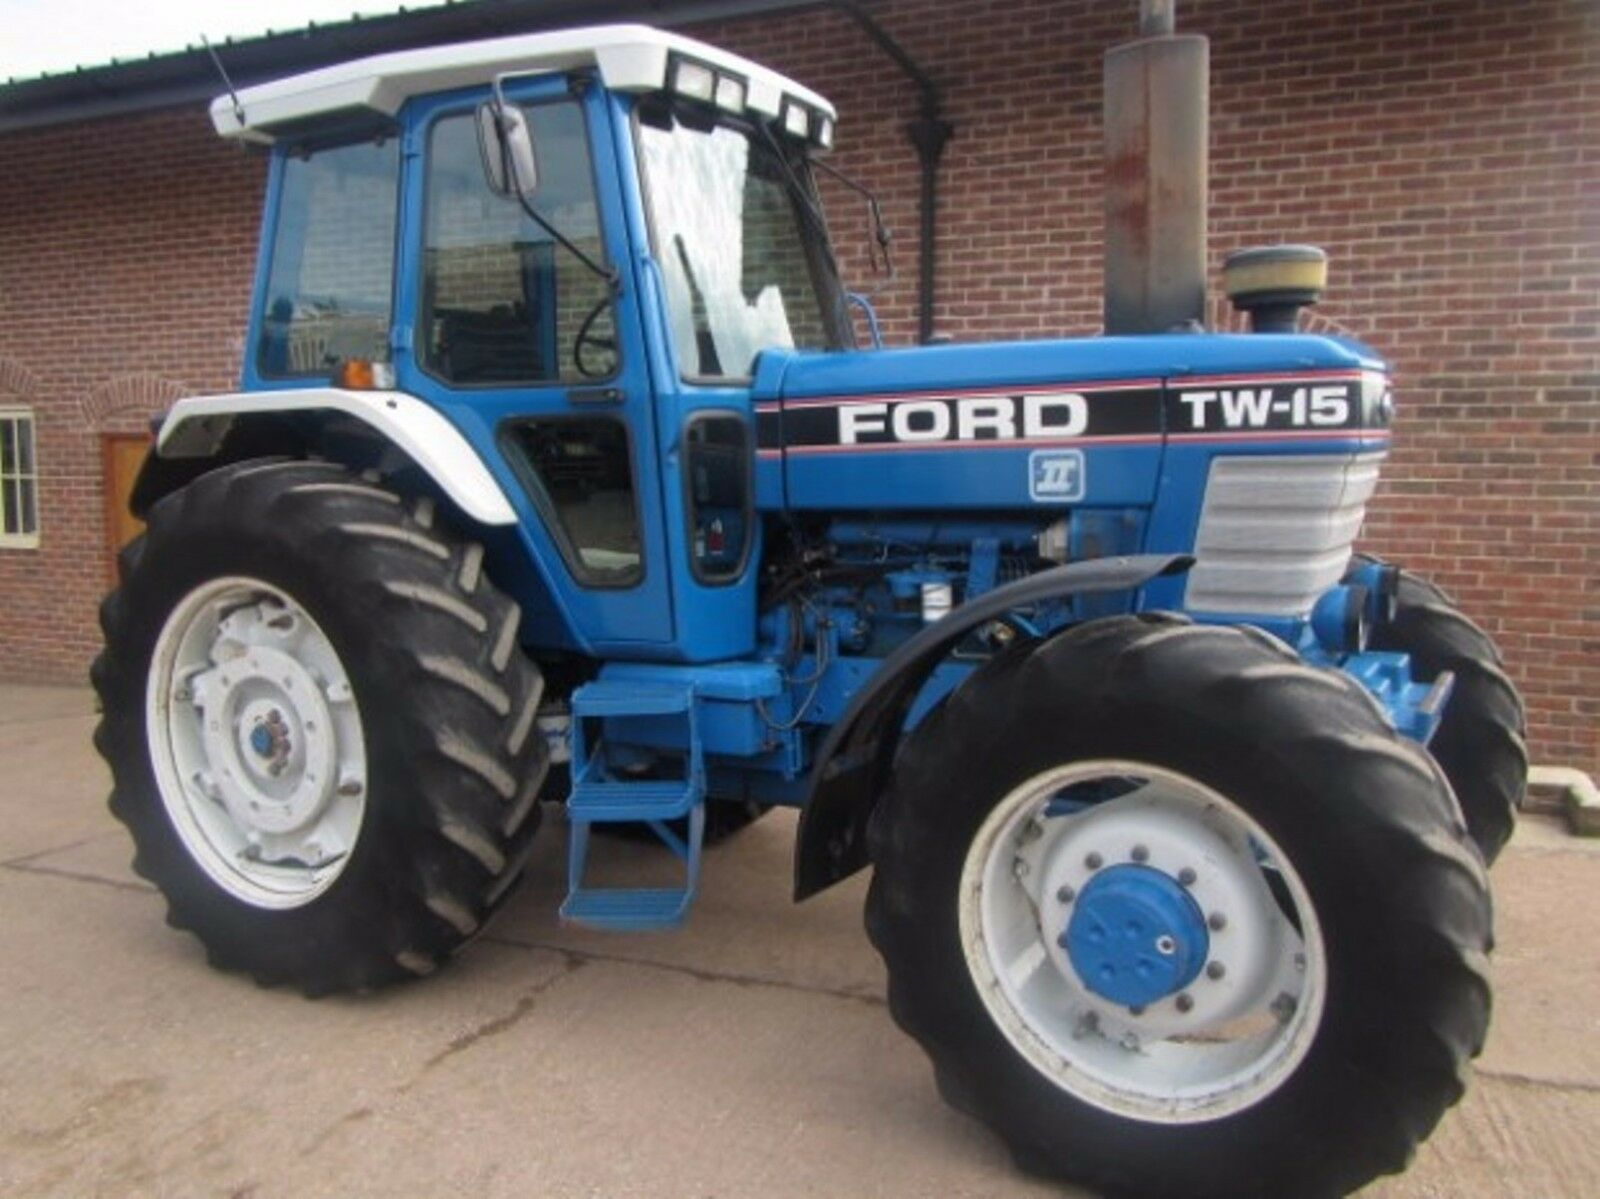 Ford Tw 35 Tractor Parts : Ford tw tractors workshop manual